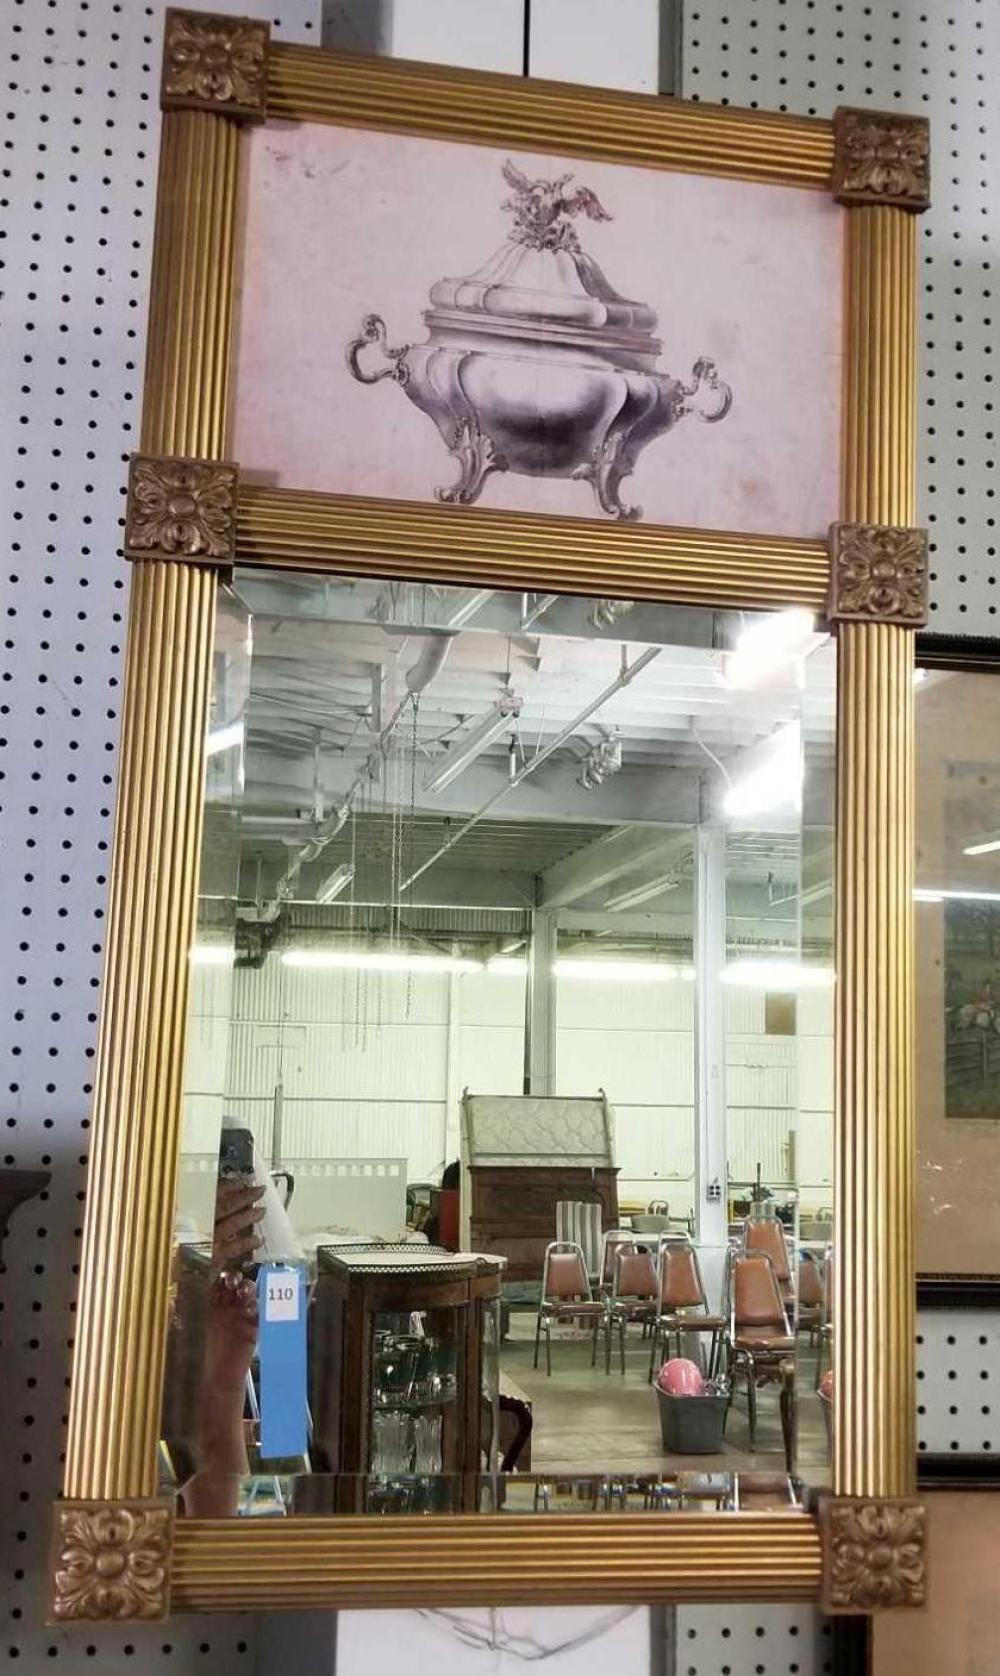 DECORATOR BEVELED WALL MIRROR W/ SILVER TUREEN IMAGE AT THE TOP